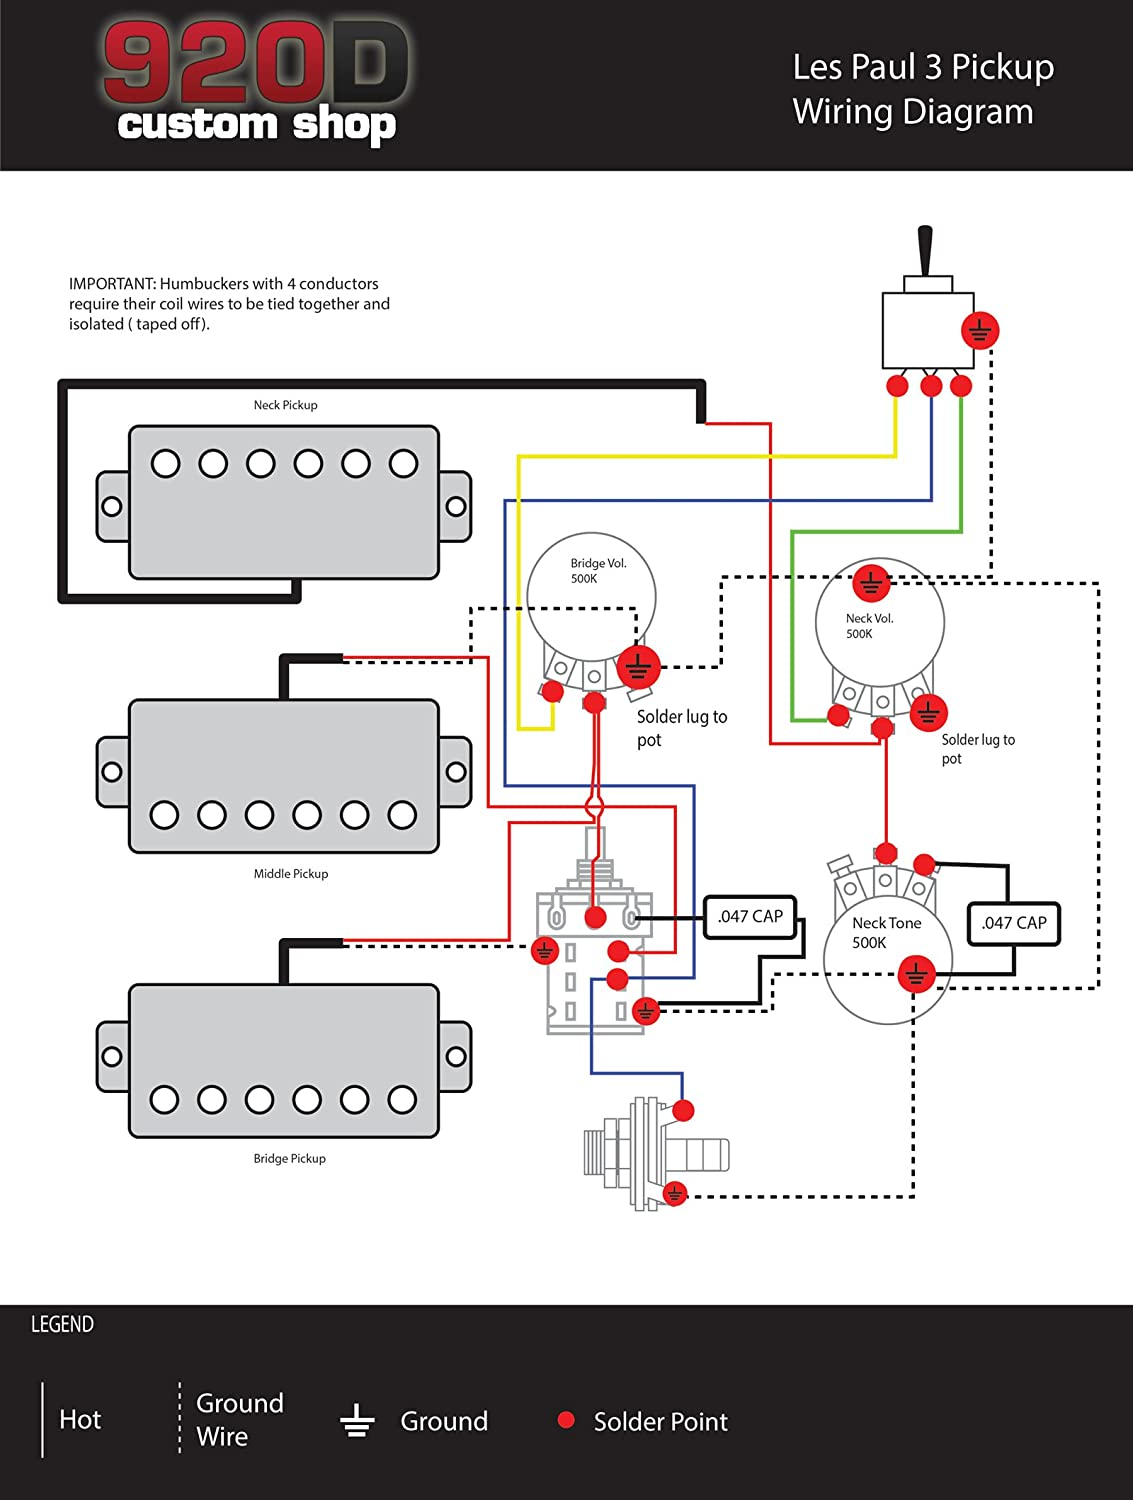 wiring diagram 3 humbucker les paul wiring image gibson 3 pickup wiring diagram jodebal com on wiring diagram 3 humbucker les paul